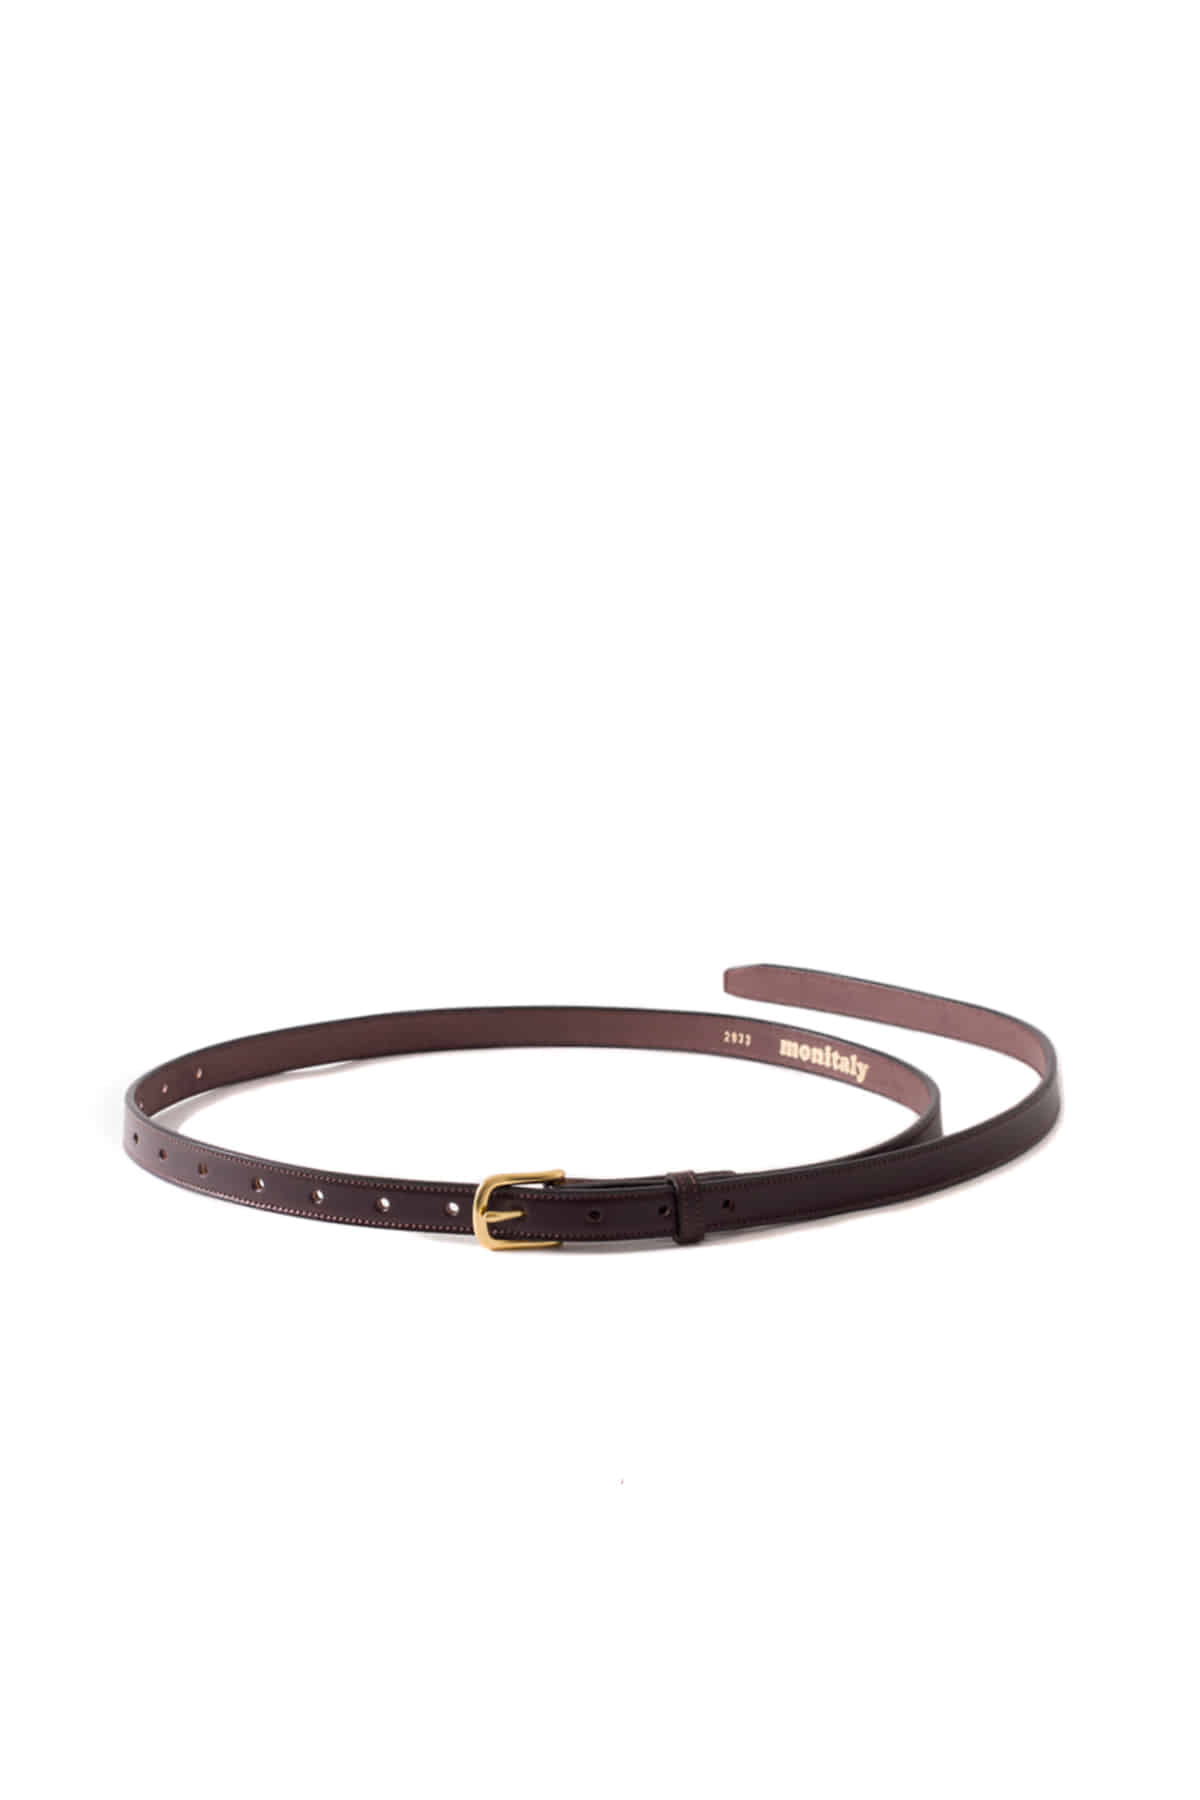 MONITALY : Extra Long Leather Belt (Brown)